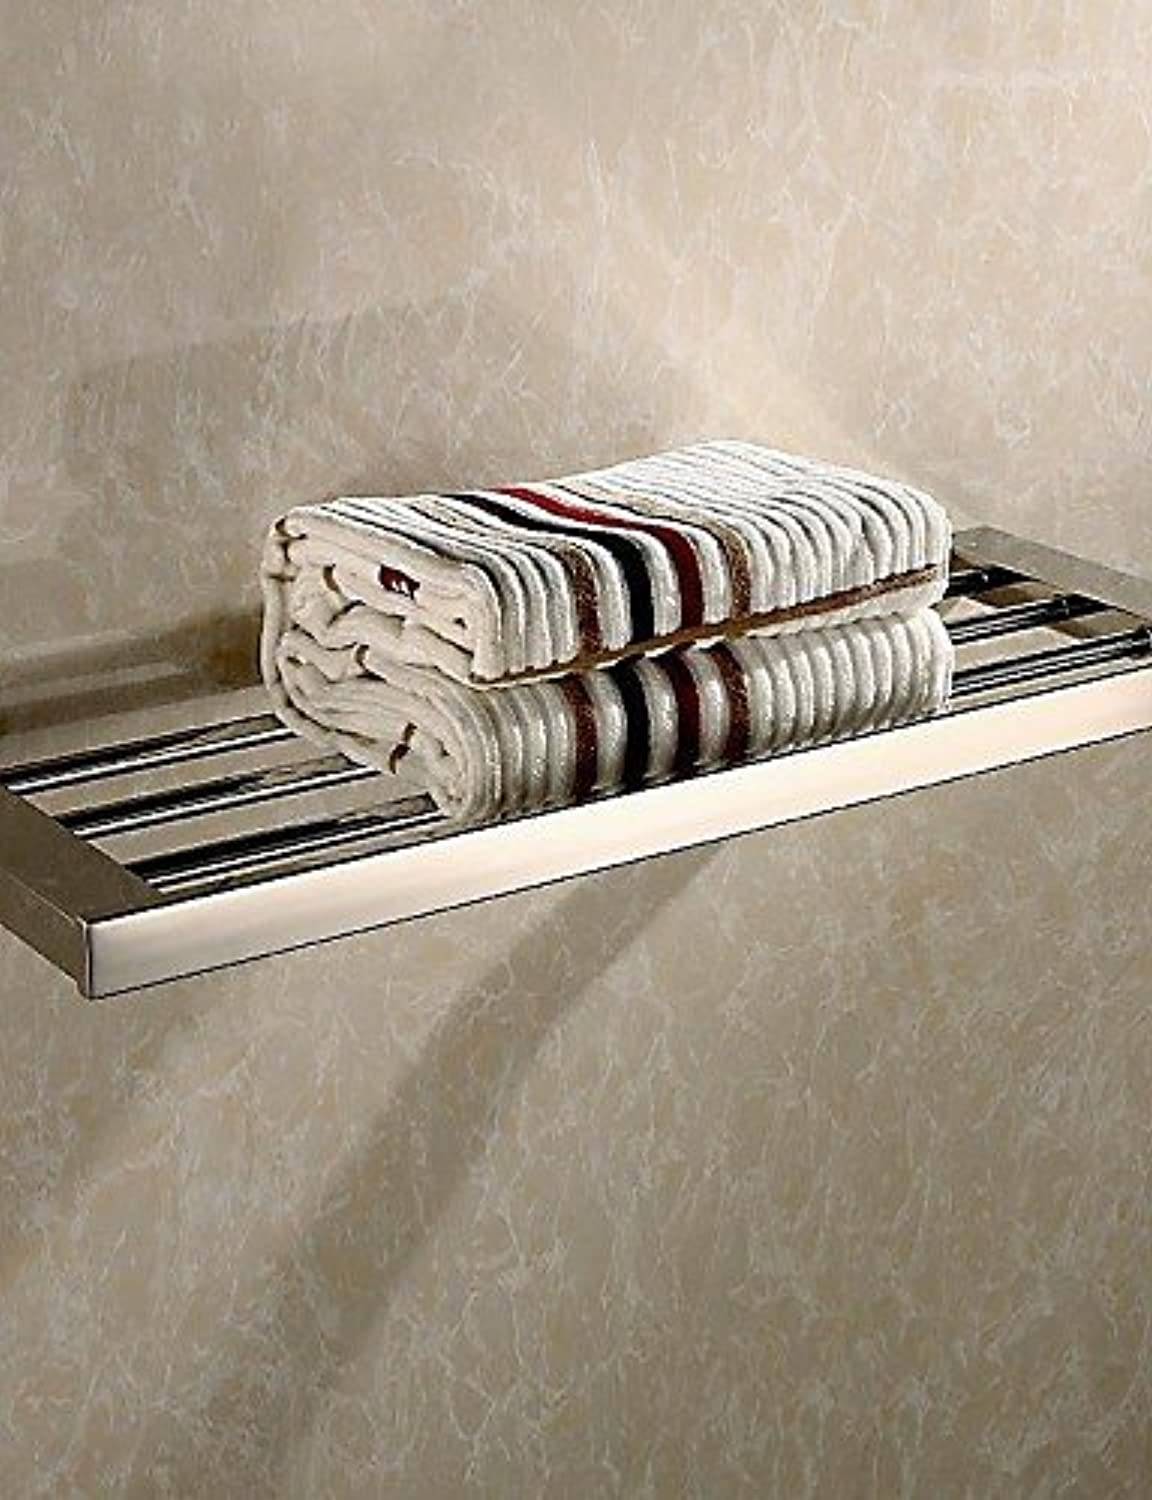 LINA@ 0.5 Bathroom Shelves,Contemporary Mirror Polished Finish Stainless Steel Material,Bathroom Accessory